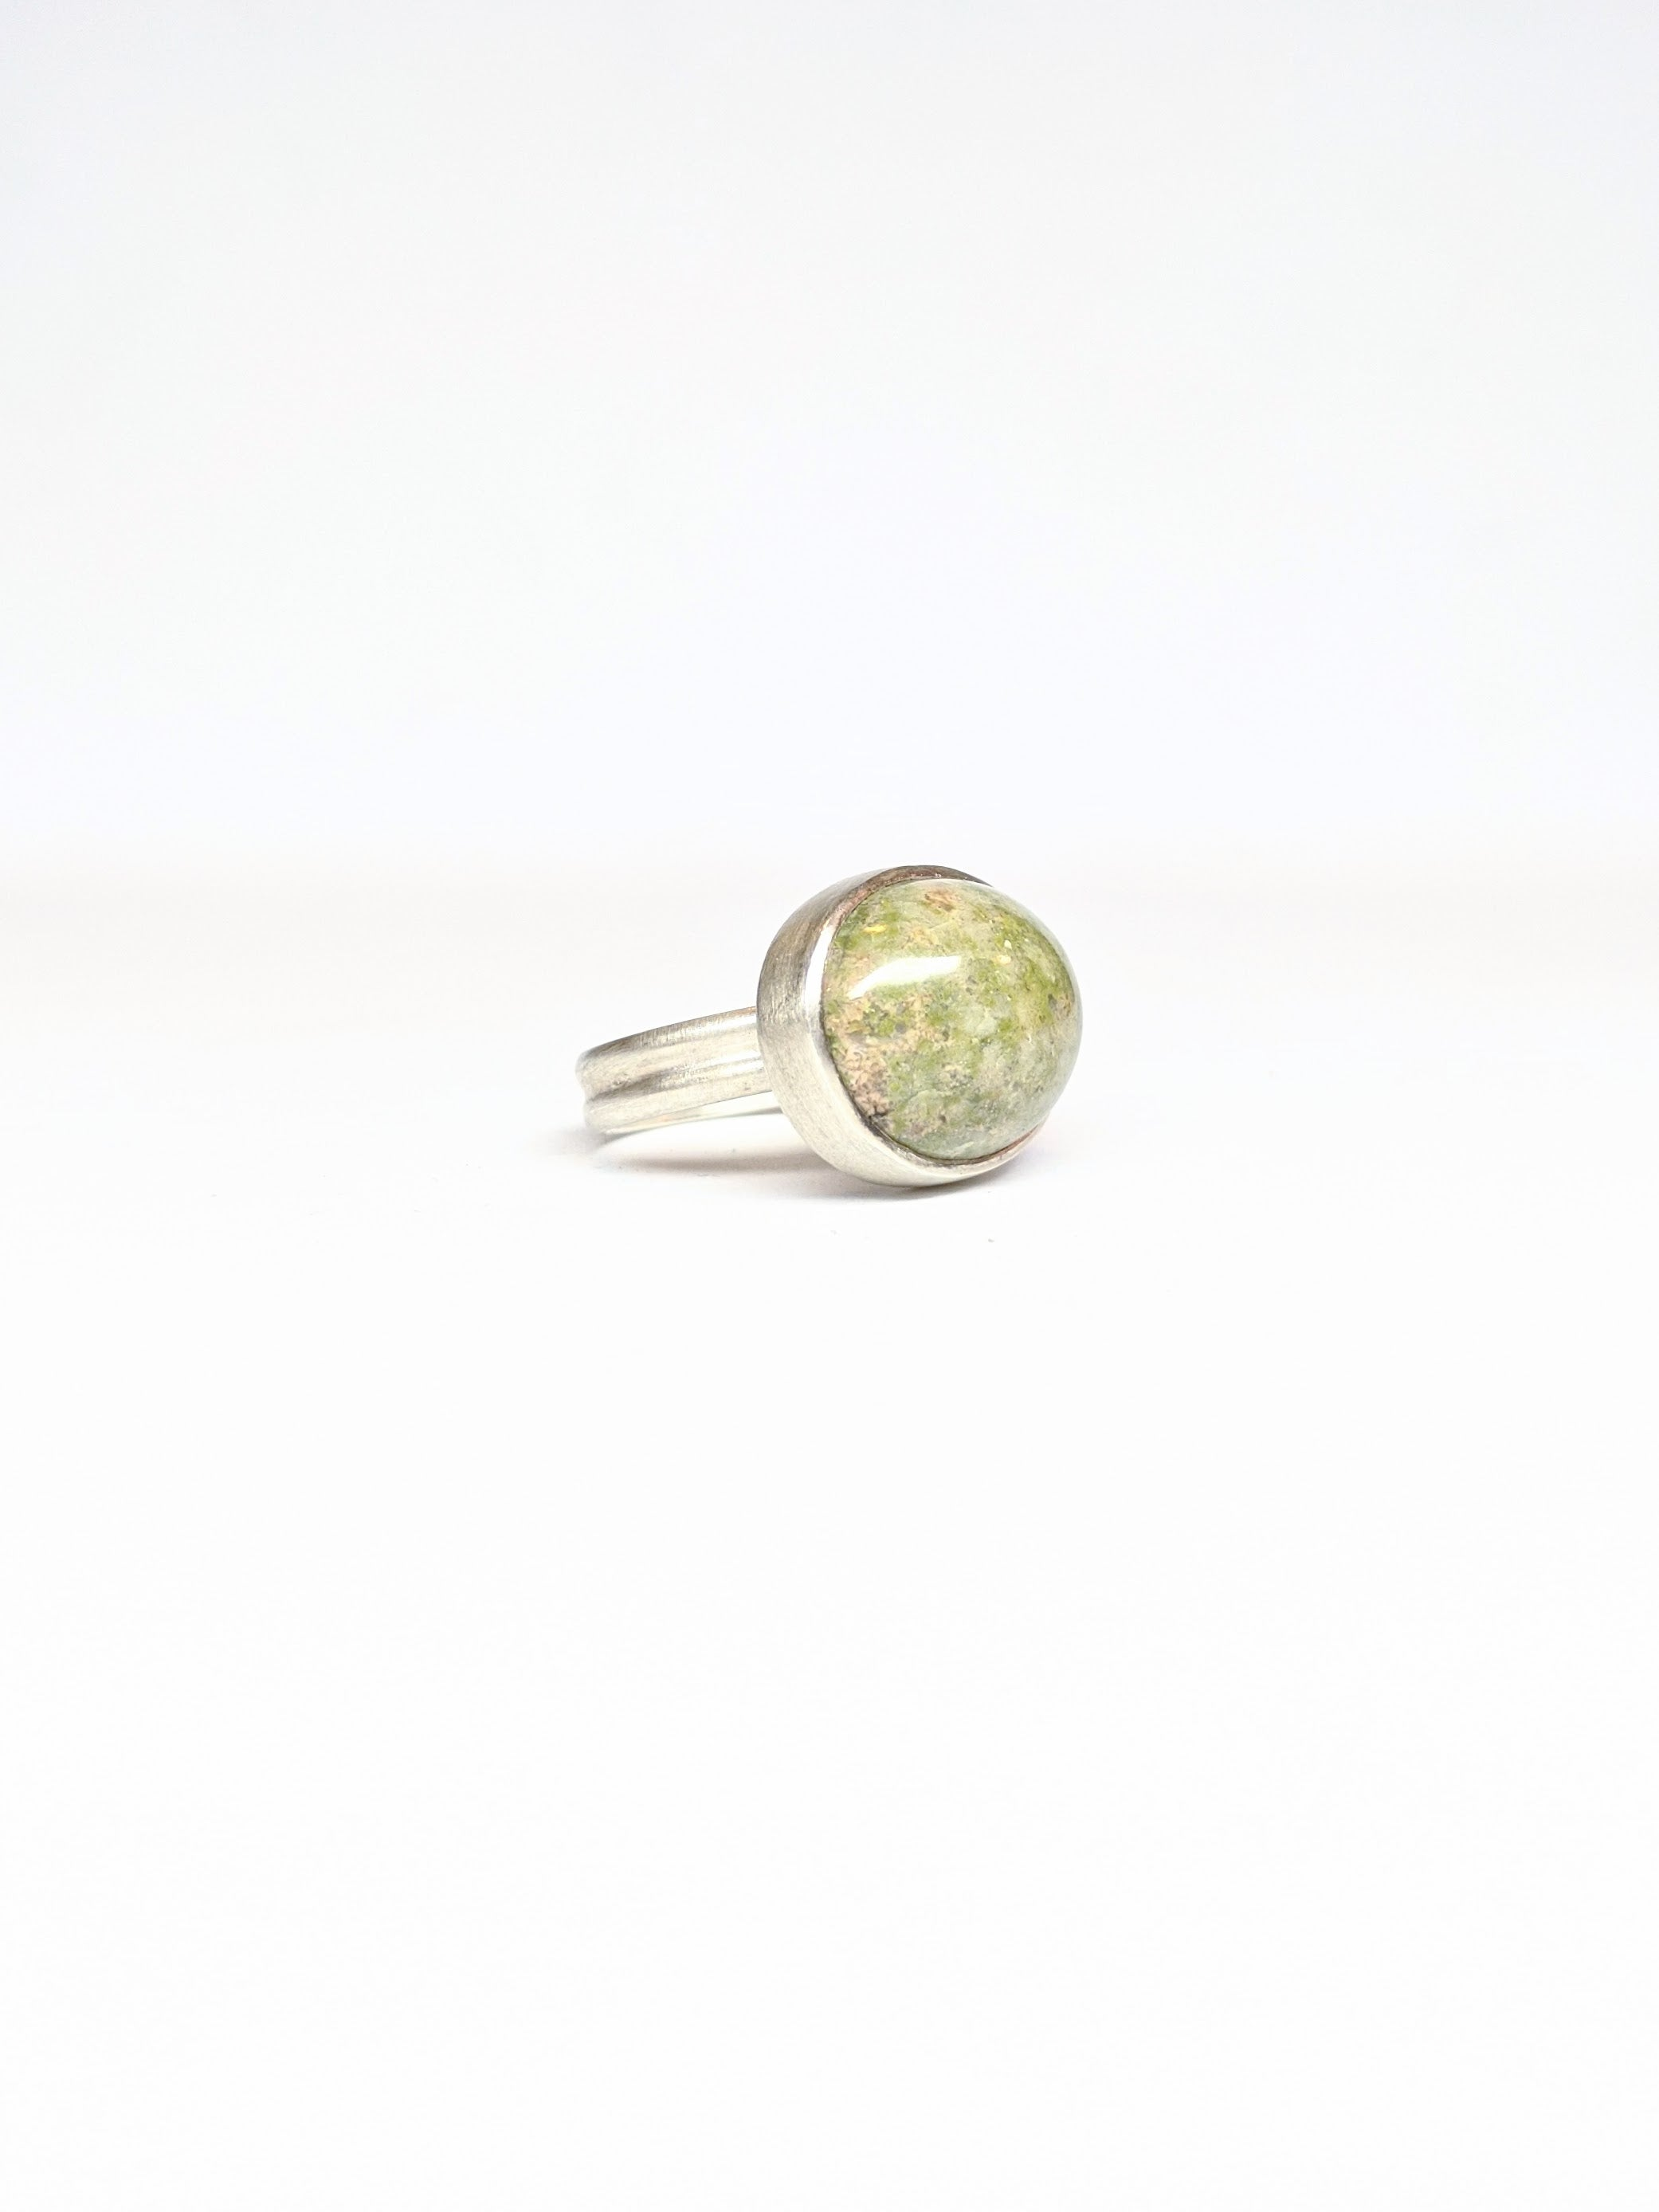 California Green Jasper Ring - Size 7.25